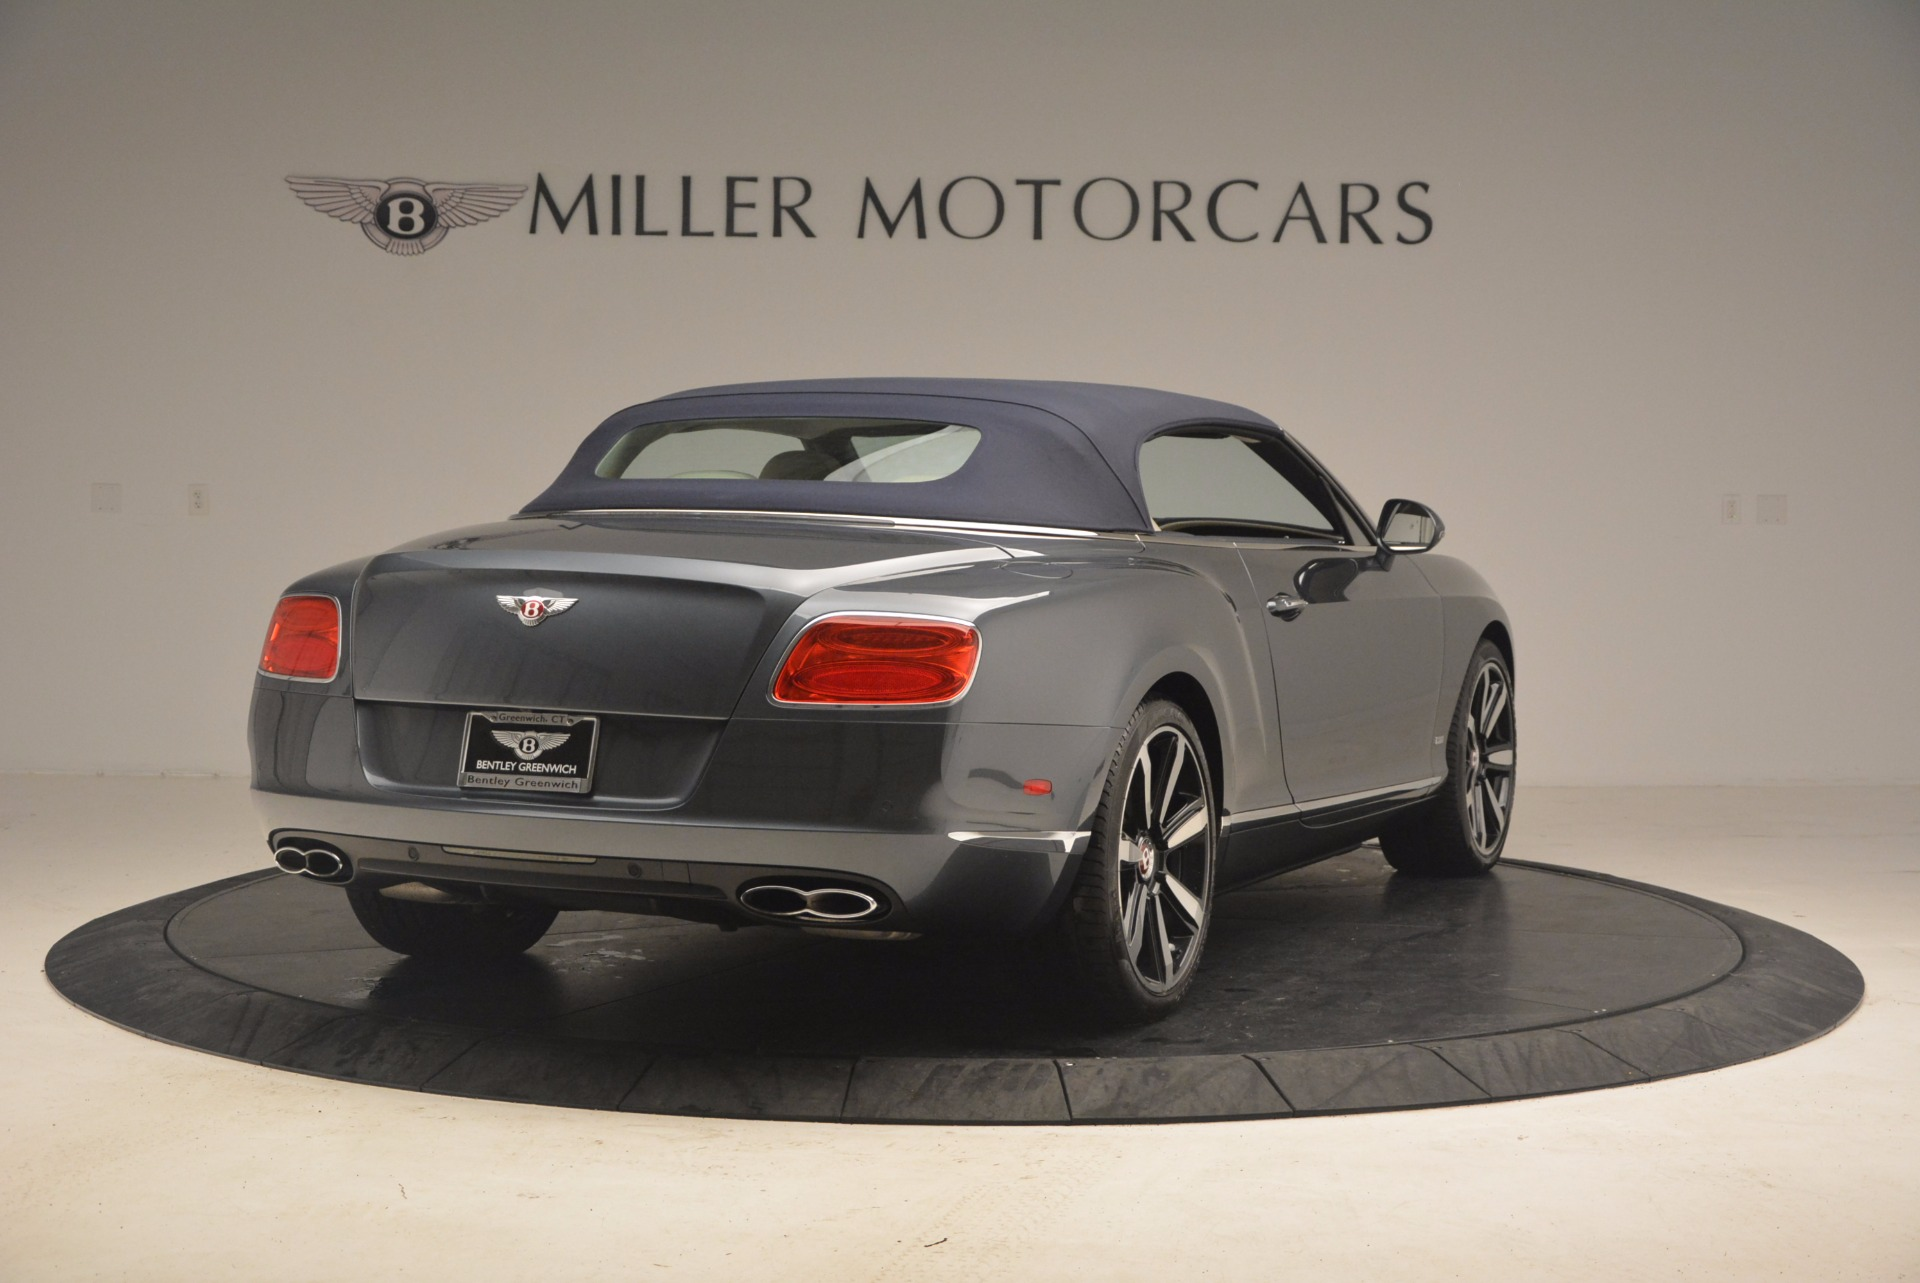 Used 2013 Bentley Continental GT V8 Le Mans Edition, 1 of 48 For Sale In Westport, CT 1288_p20